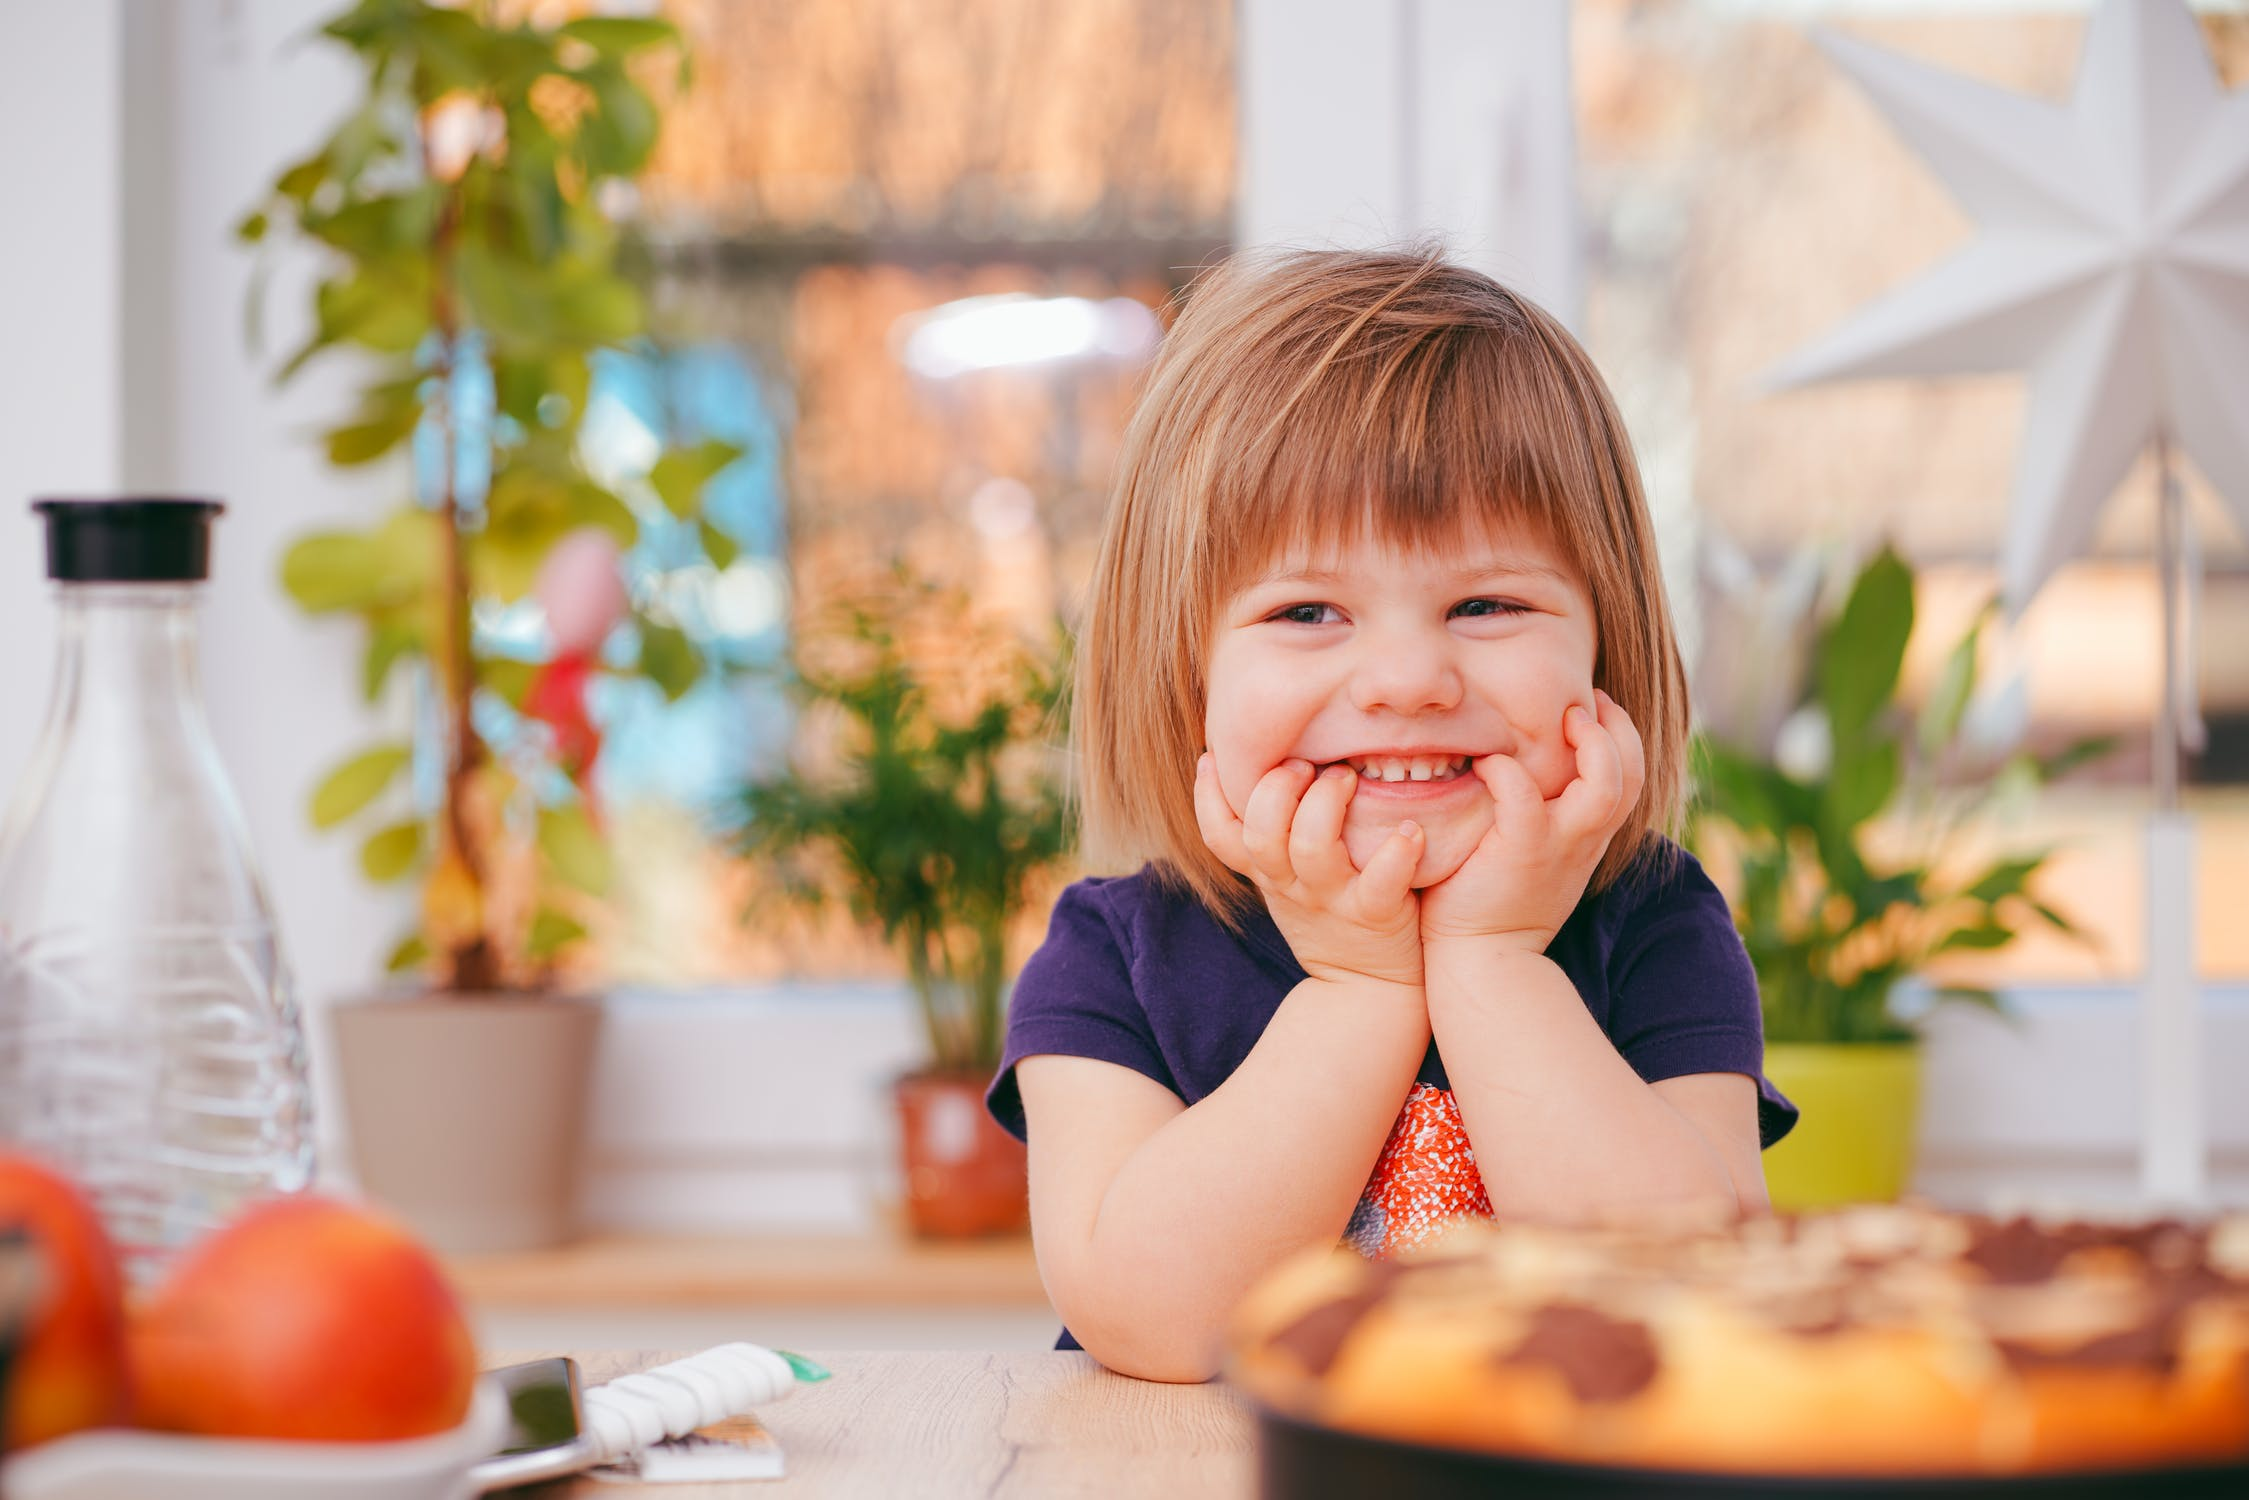 Kids eat free at CoreLife Eatery